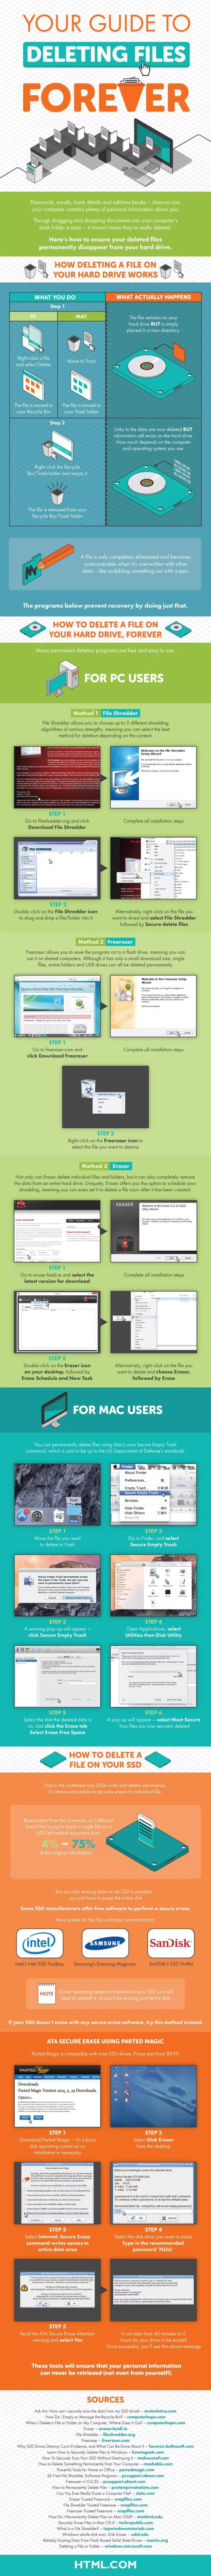 deleting-files-forever-infographic